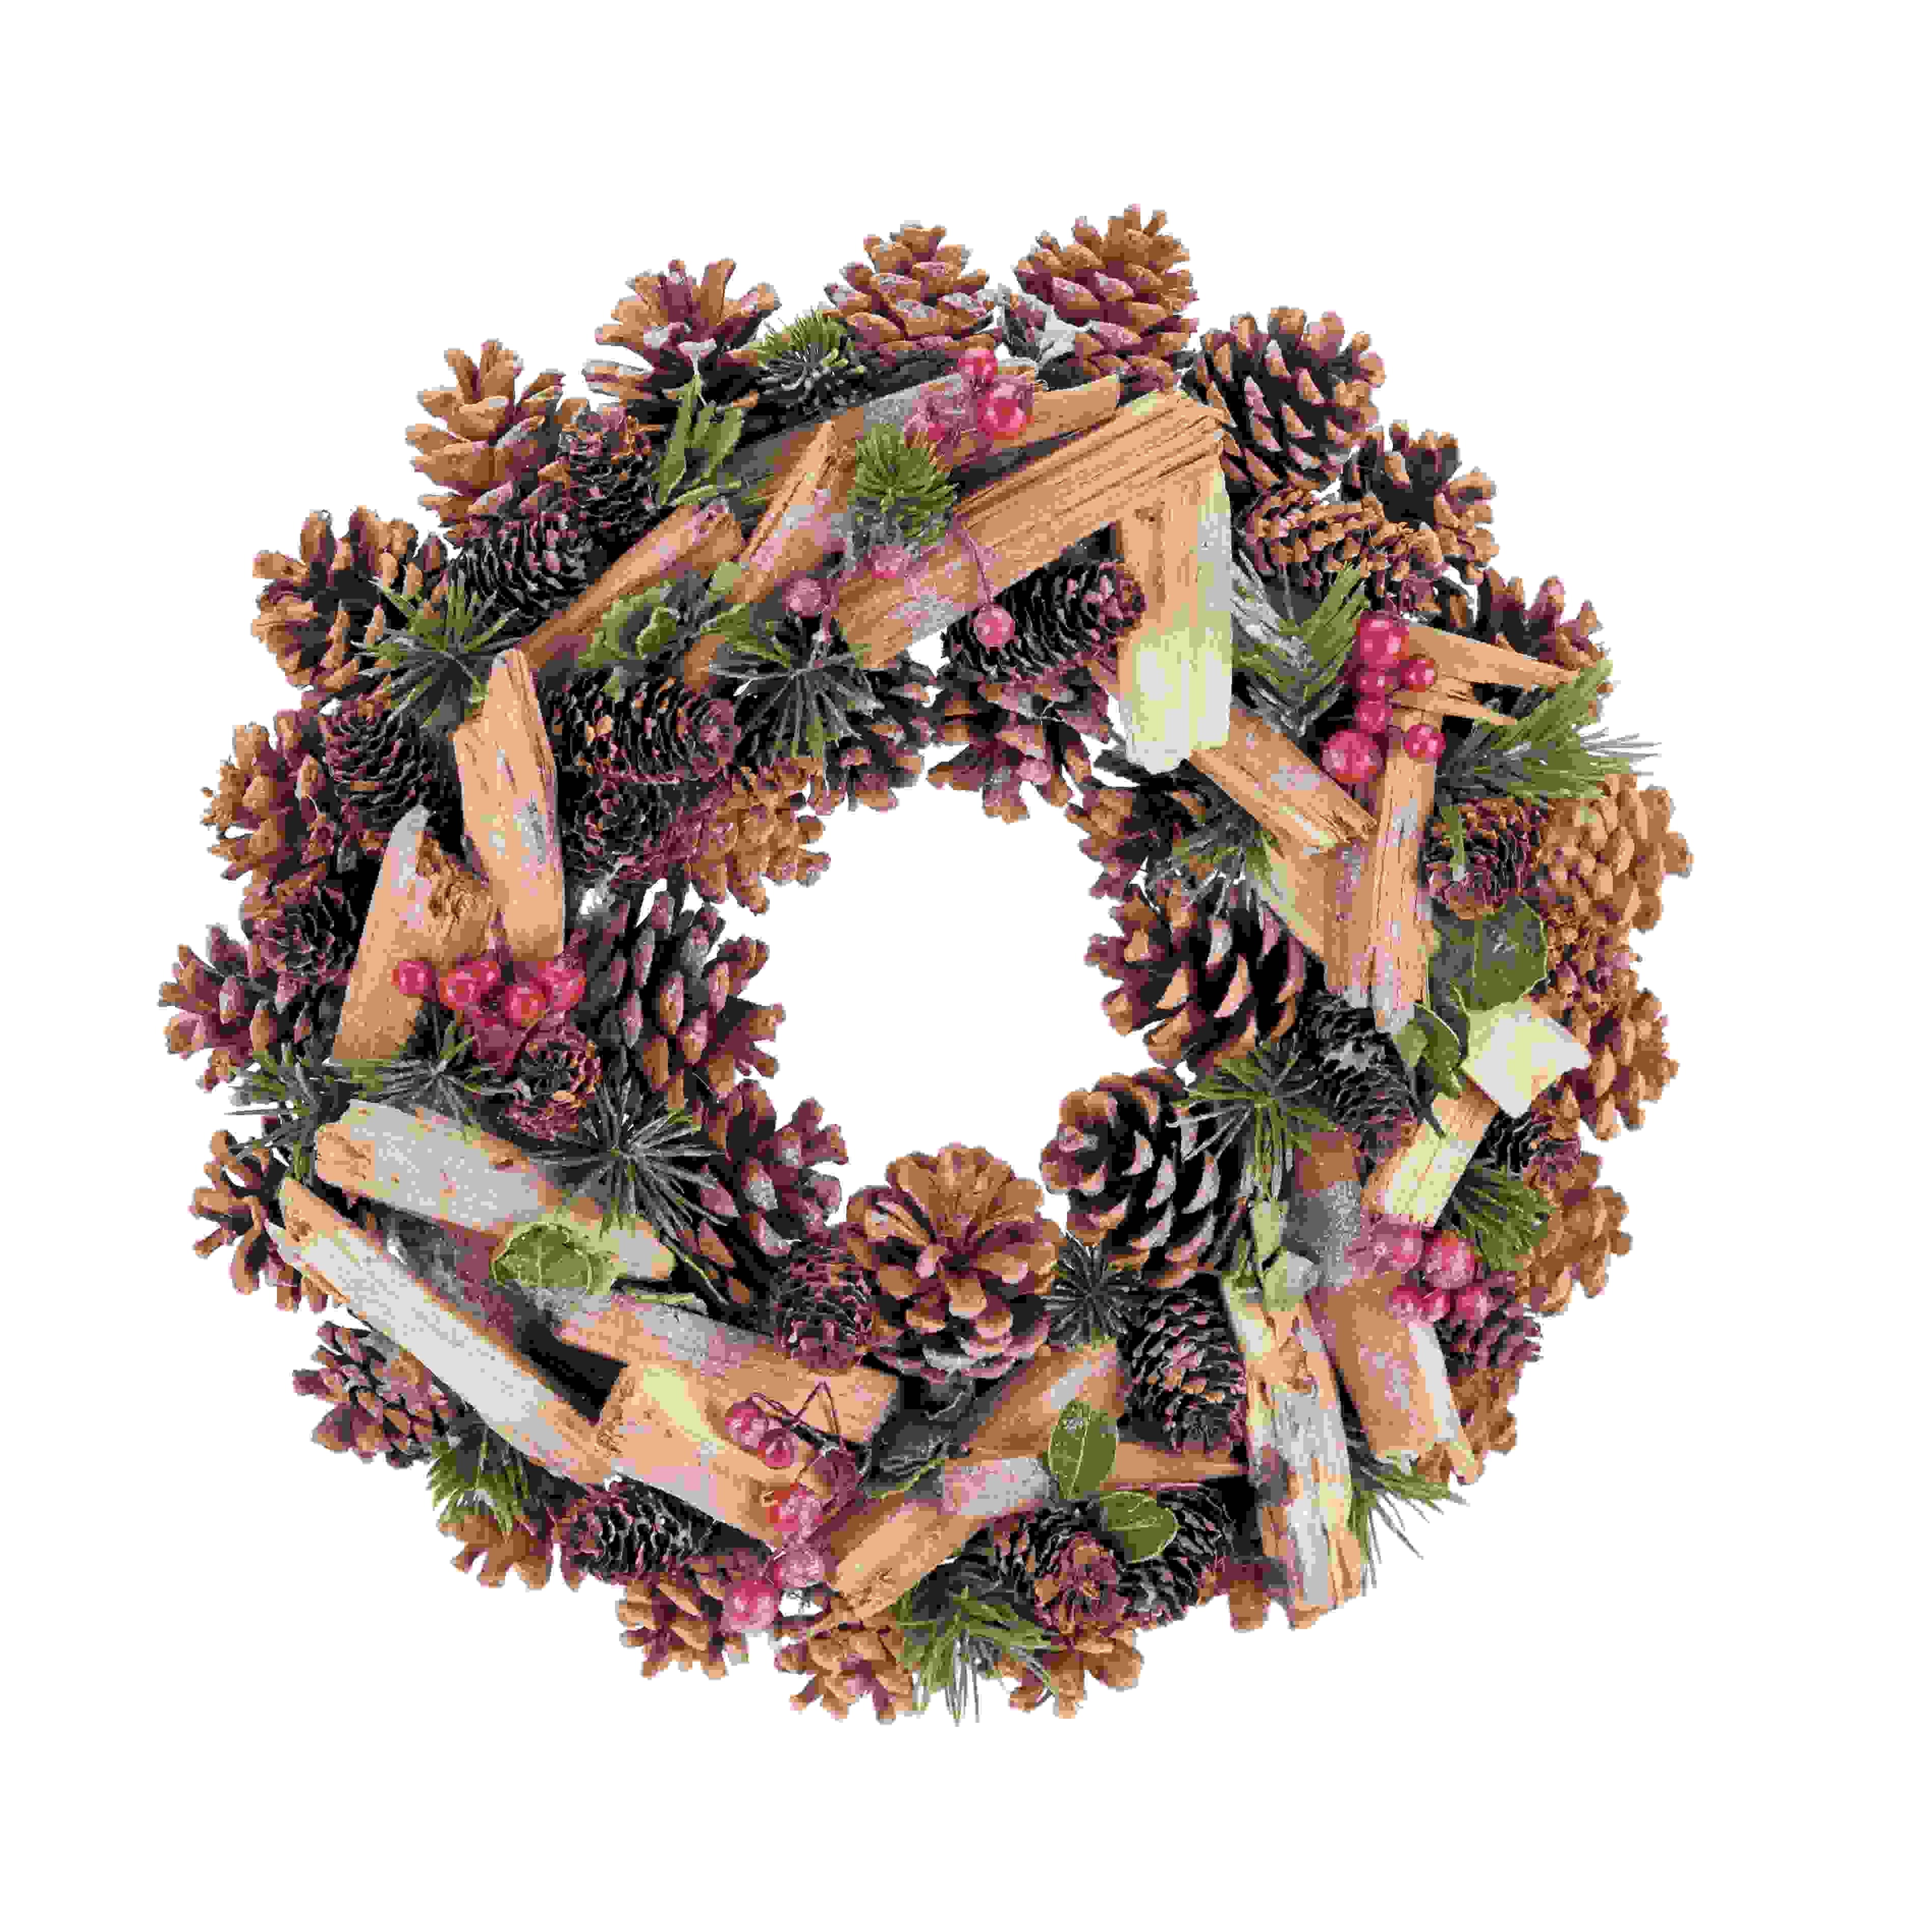 WREATH 35cm MIXED NAT. CONE/BERRY/TWIG/FIR